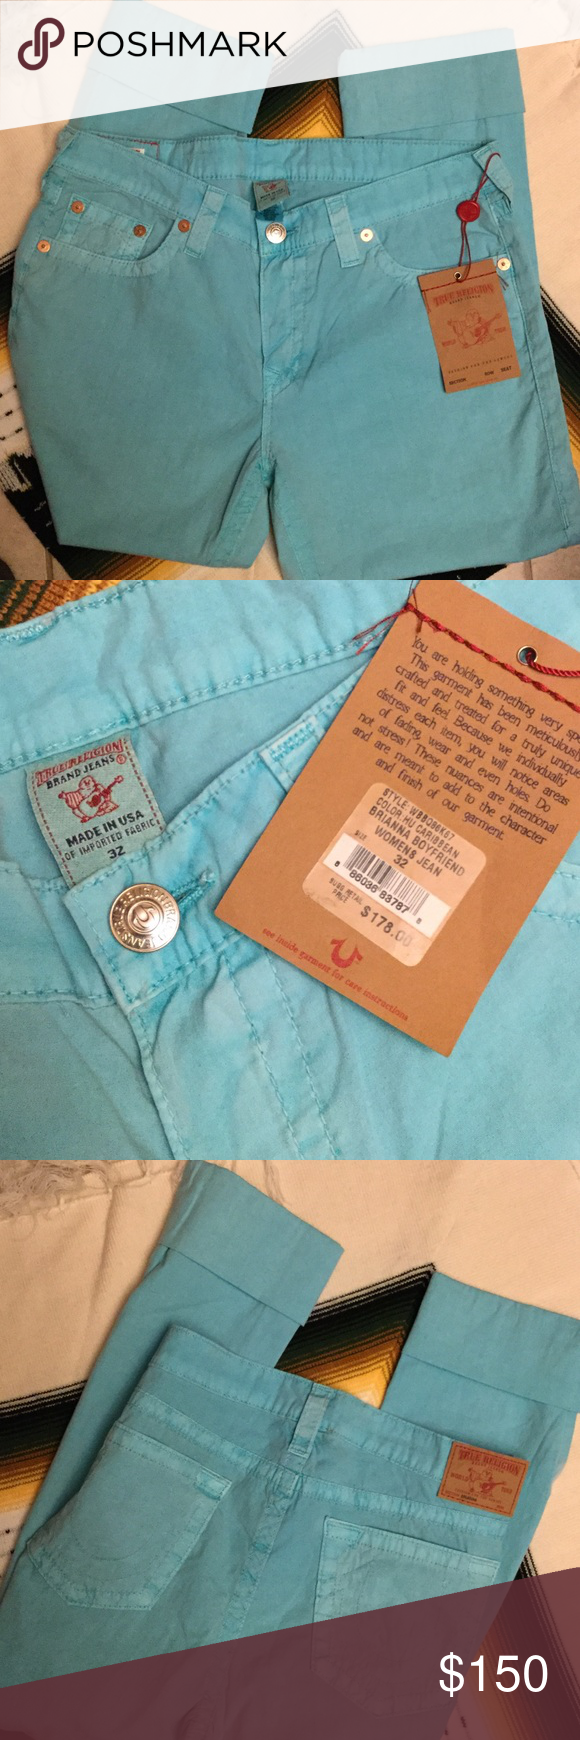 True Religion Boyfriend Jean (Brianna) Original tag attached, with price of $179. Color is Caribbean, model name is Brianna. 98% cotton, 2% spandex. These are jeans but the fabric is lighter and way more comfortable than traditionally denim. Glorious fit and feel.😍 Jeans Boyfriend